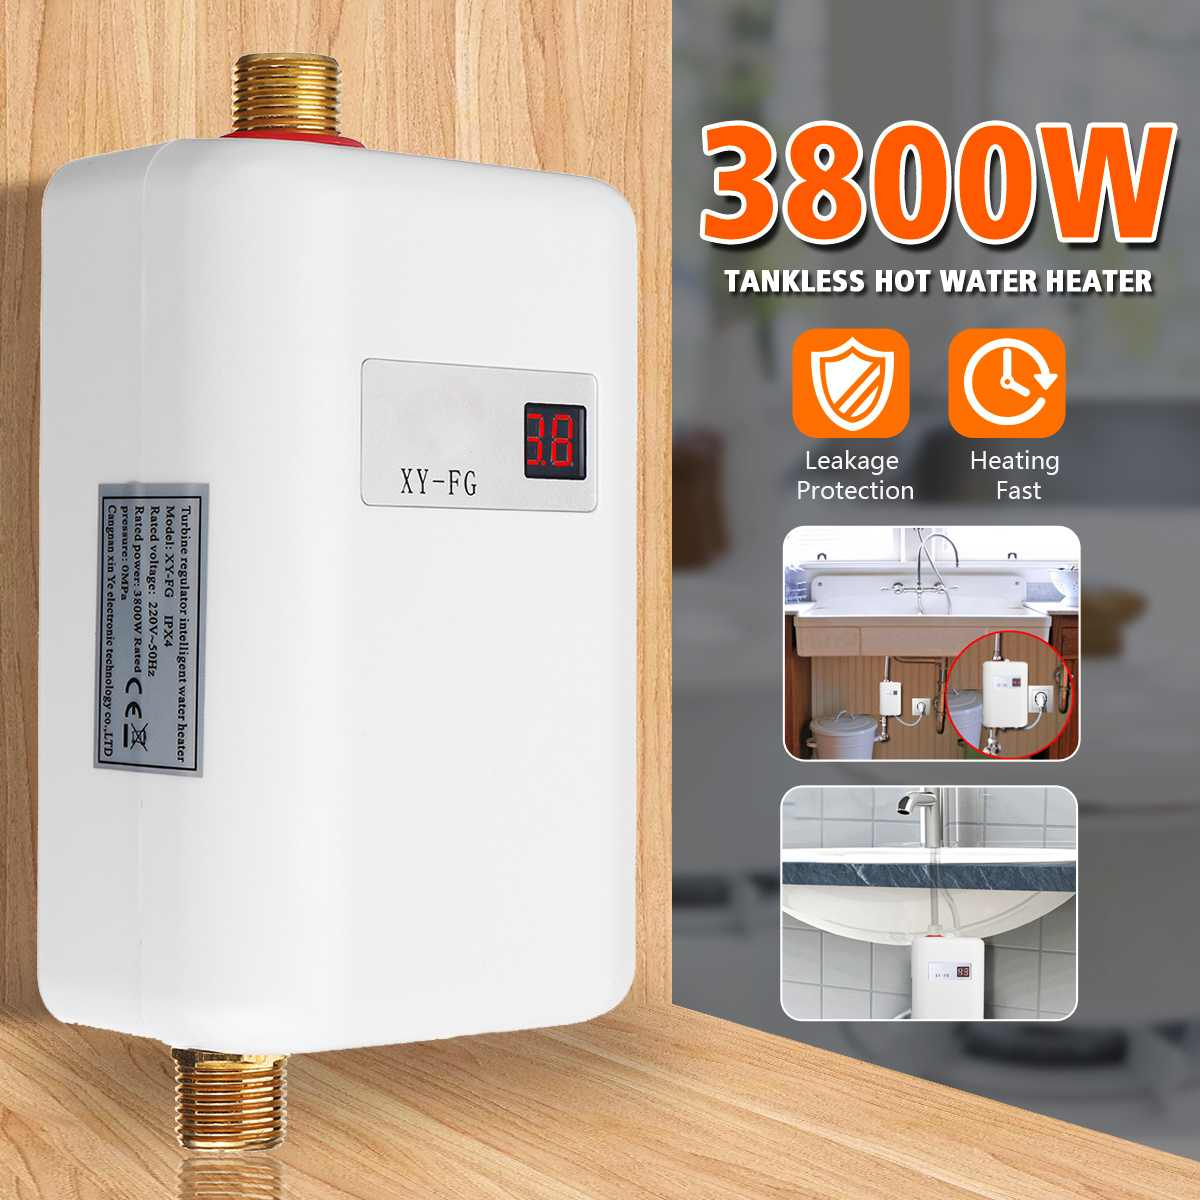 3800W Electric Water Heater Instant Tankless Water Heater 220V 3 8KW Temperature Display Heating Shower Universal